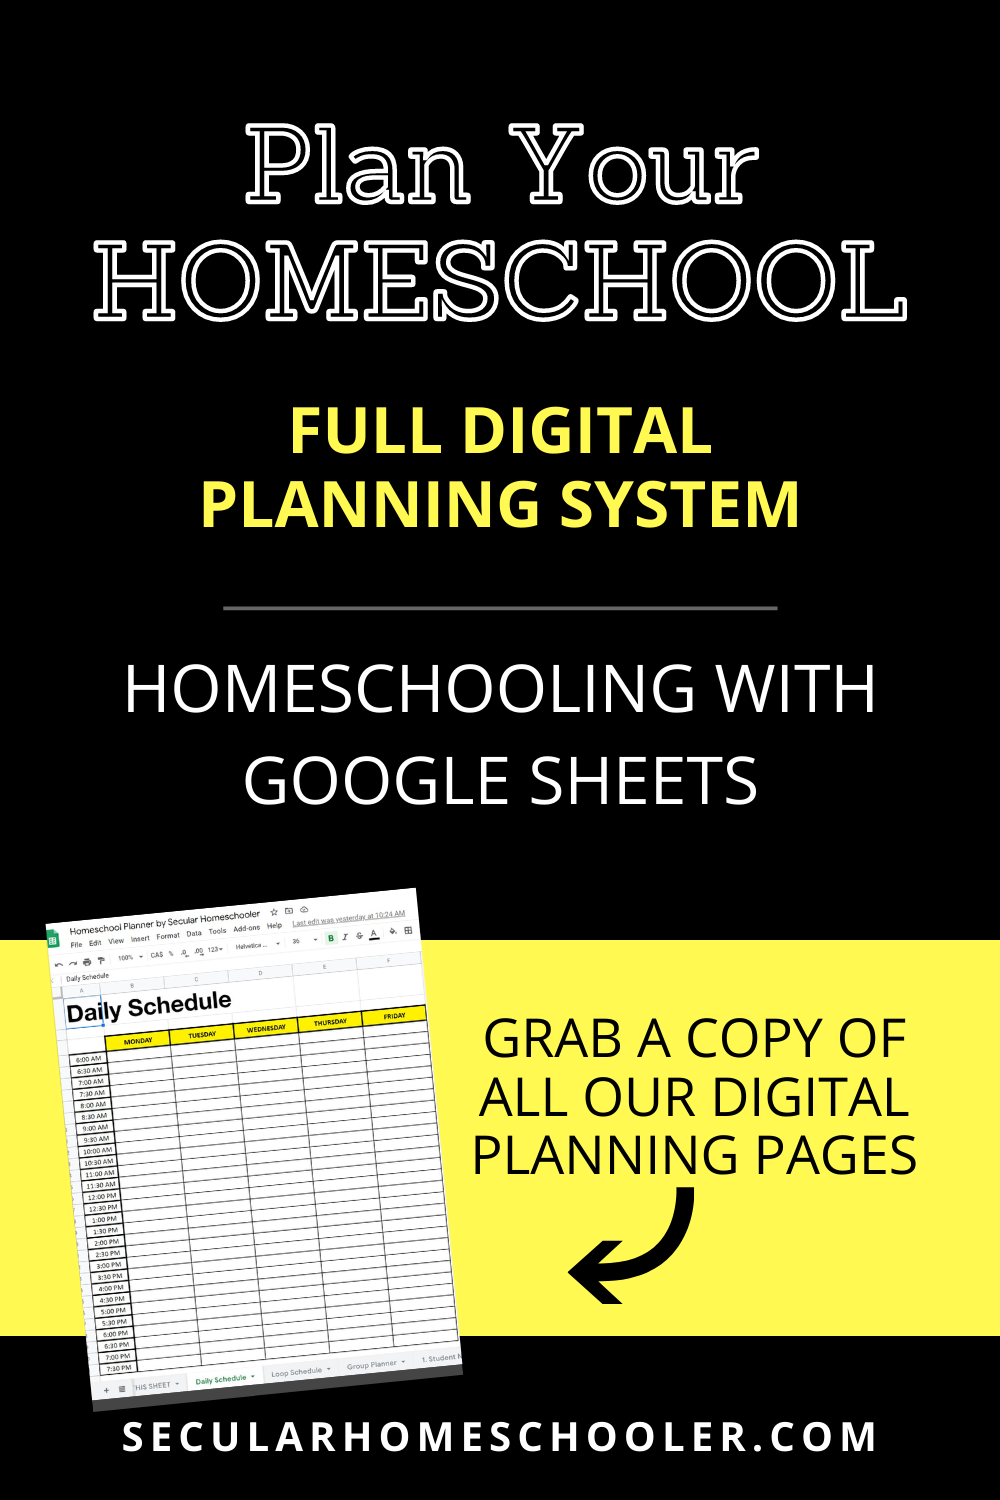 Homeschool Planner Free How to Plan Year Homeschooling With Google Sheets Secular Homeschooler